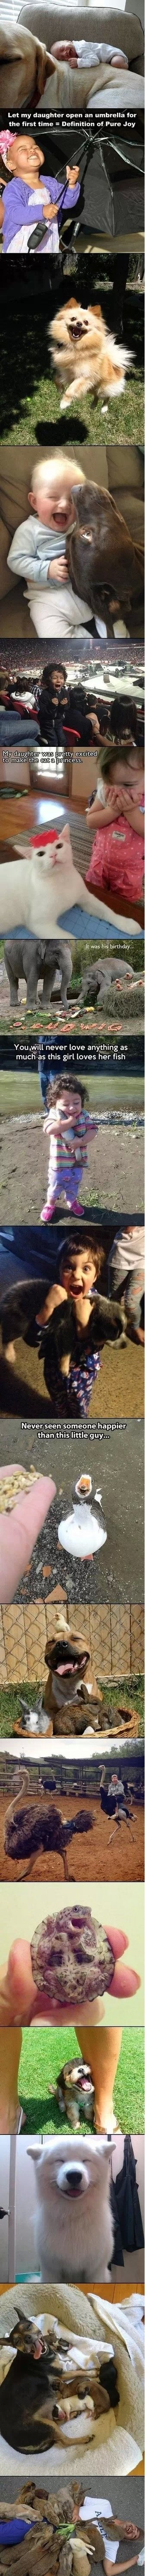 funny-picture-pure-joy-compilation